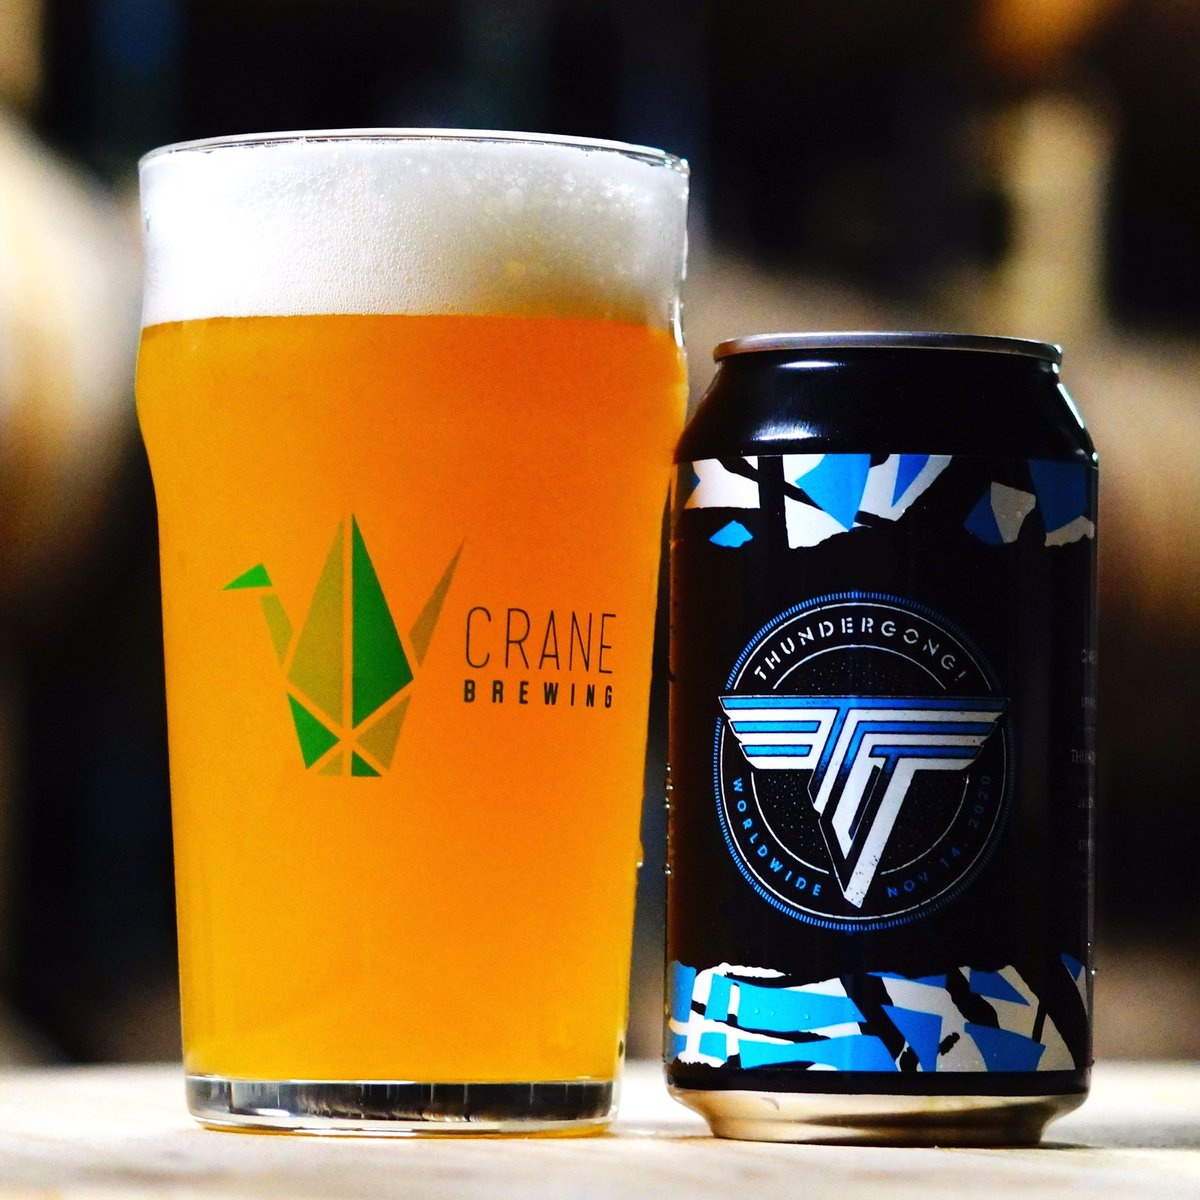 Pick up a six pack of @CraneBrewing #Thundergong! beer today for tomorrow's double header of the Chiefs game and then The Best of Thundergong! on @KCTV5 at 4pm! 🍻  Crane donates $1 for every case sold to Steps Of Faith!